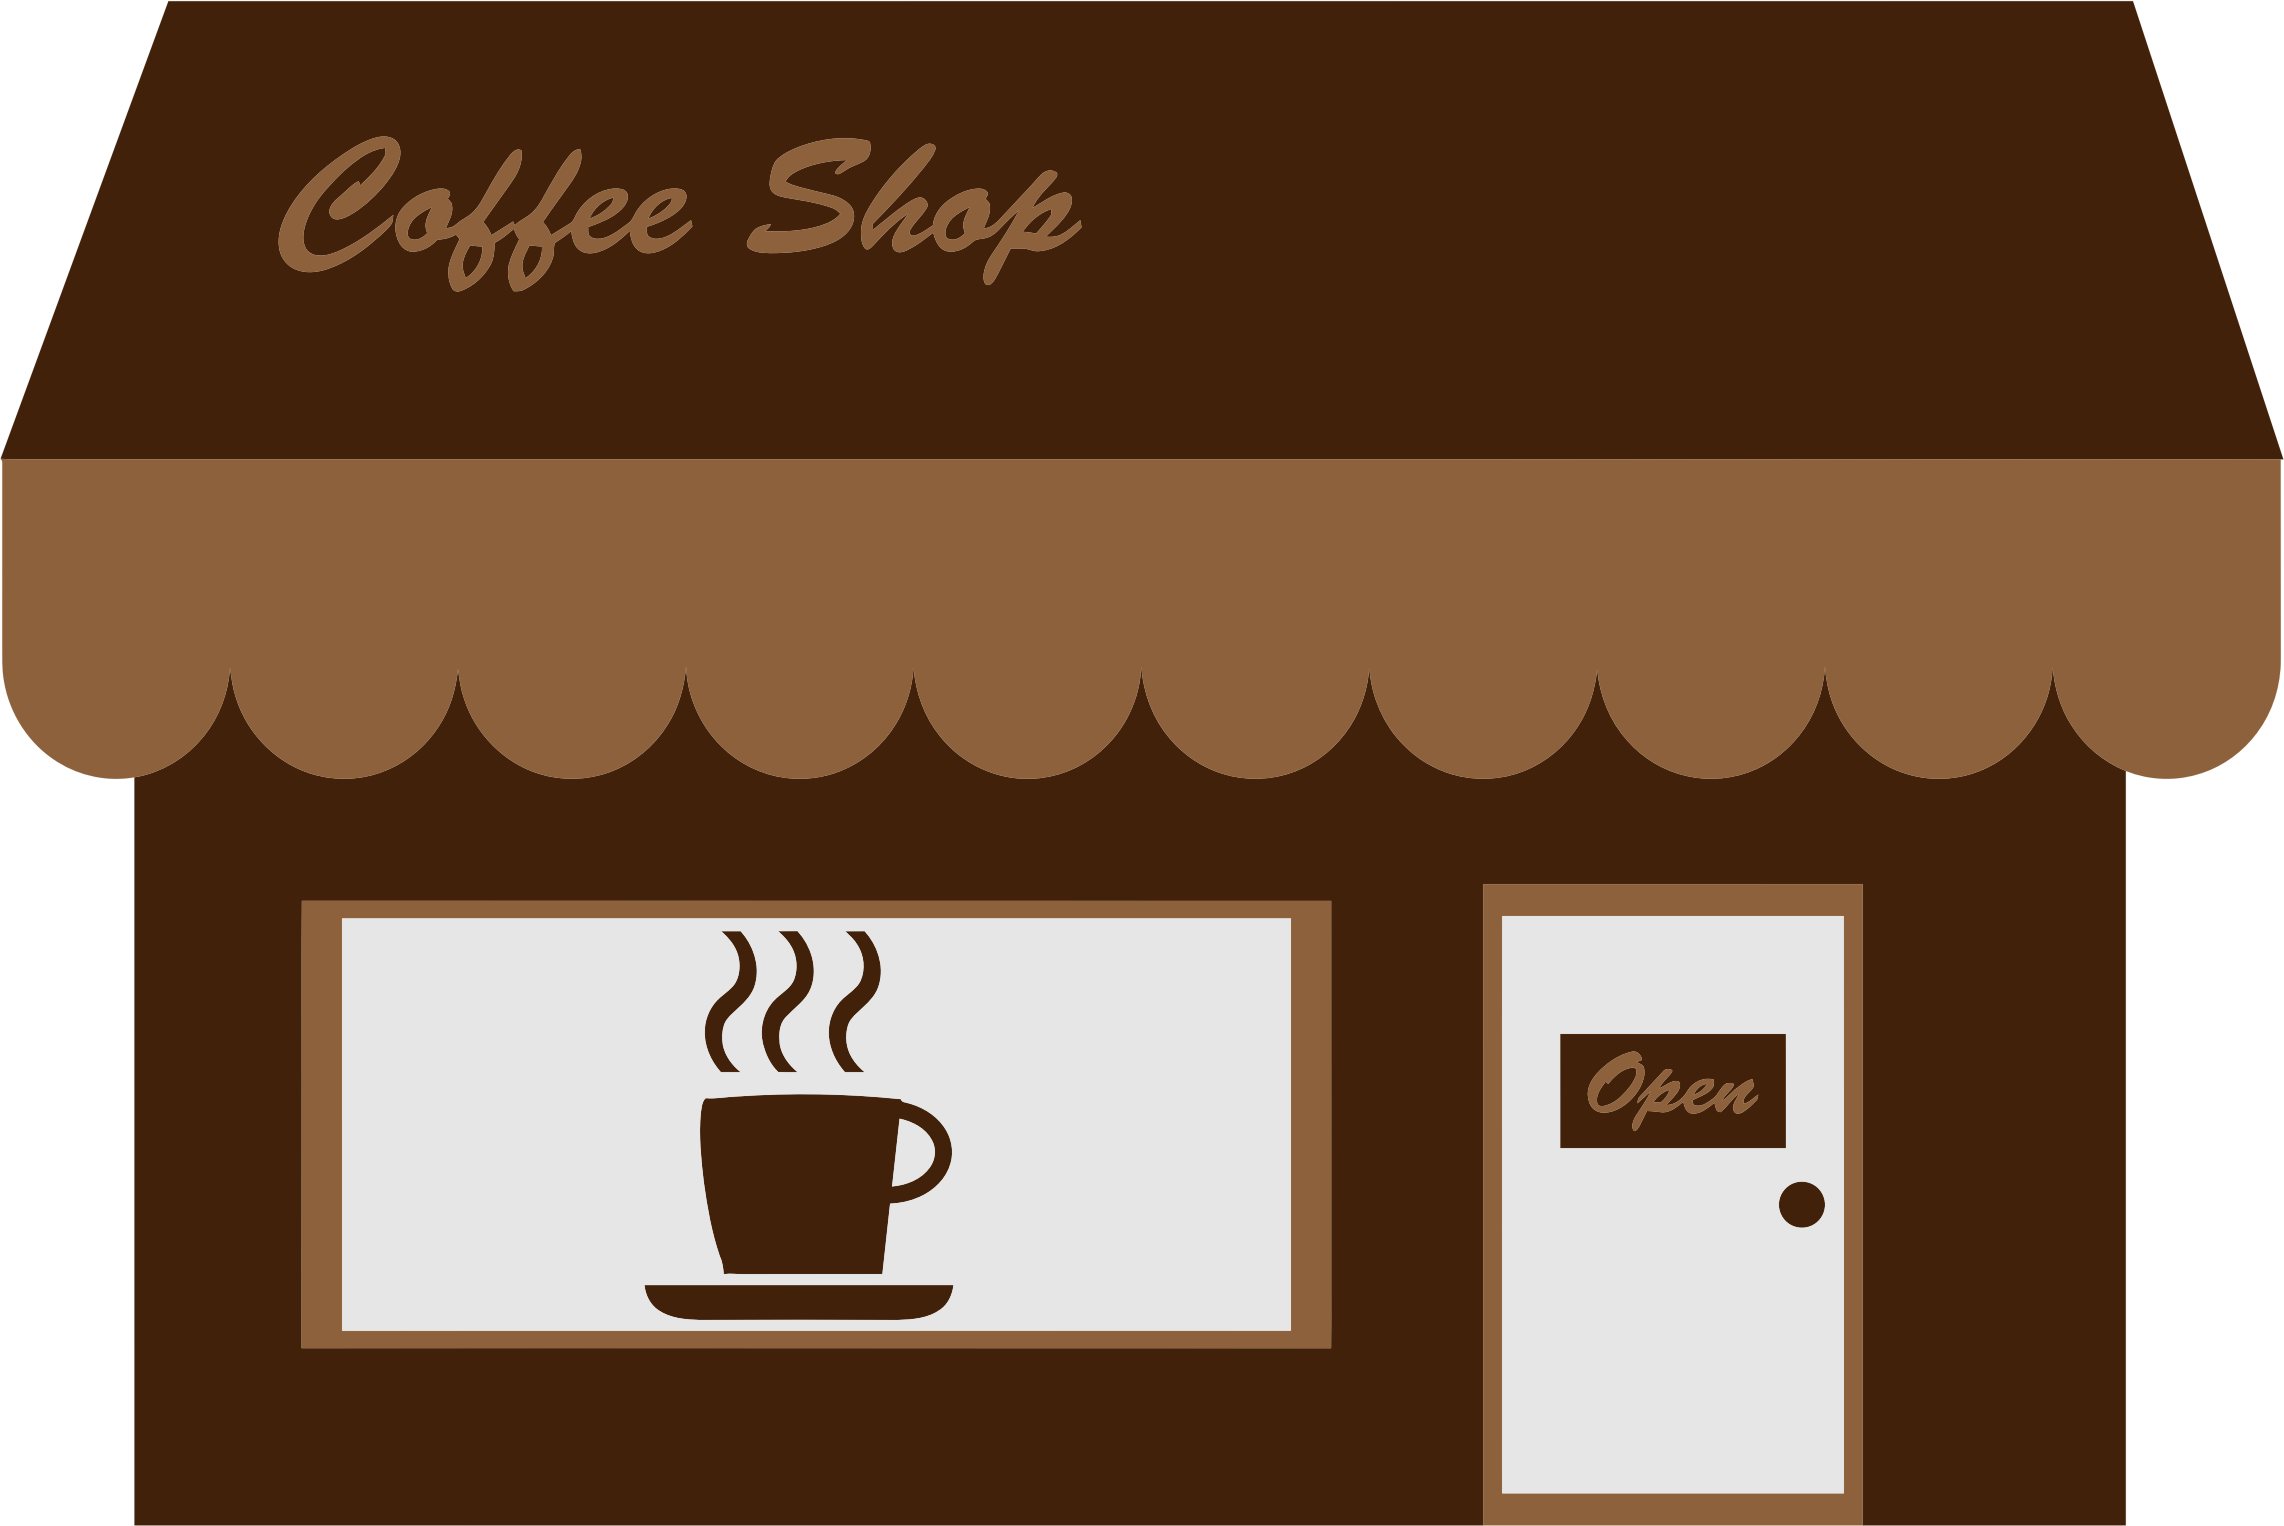 clipart coffee shop storefront [ 2284 x 1526 Pixel ]